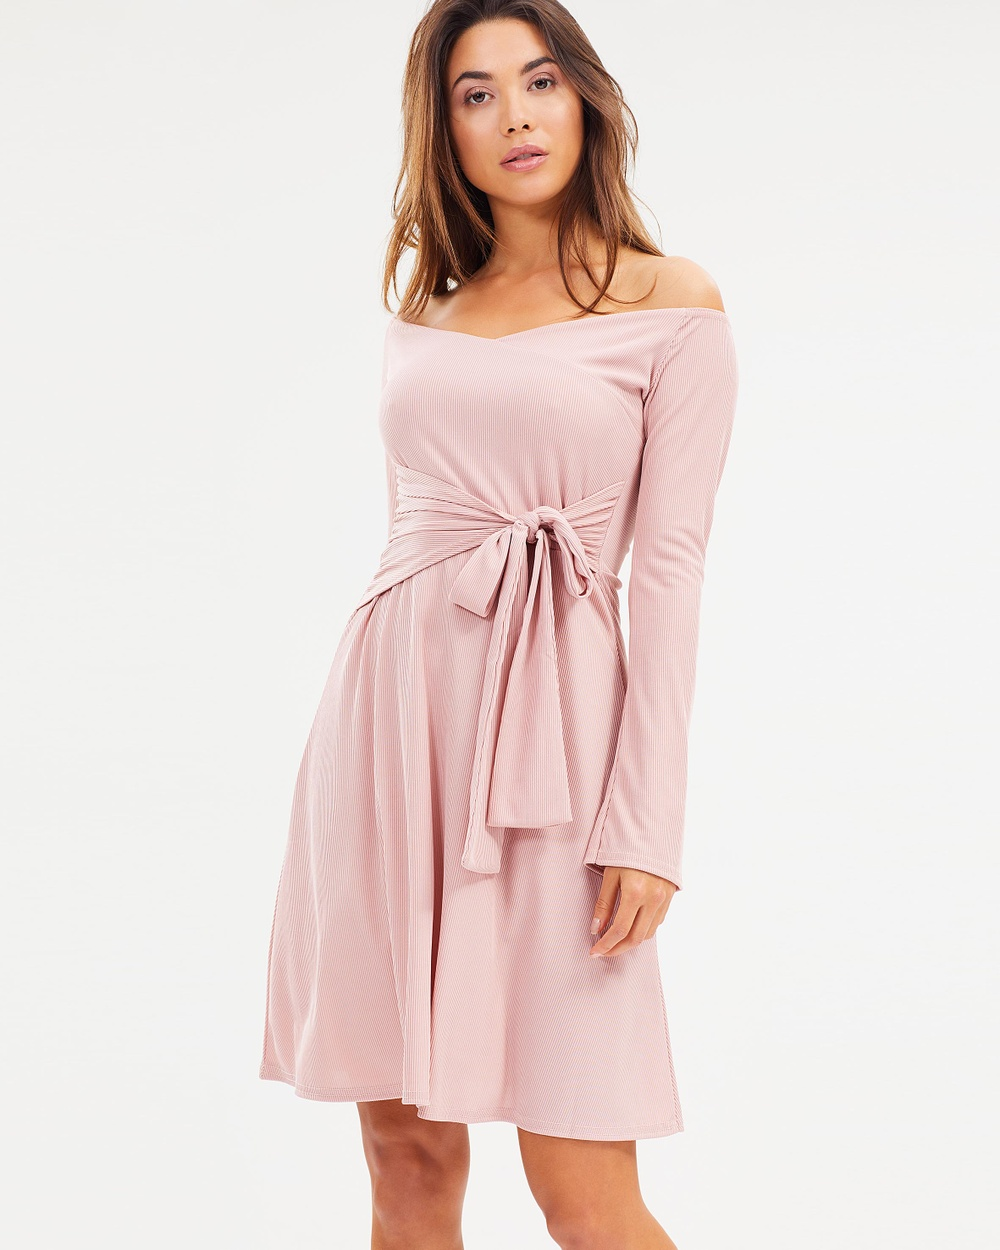 Lost Ink Jersey Fit and Flare Wrap Dress Dresses Pink Jersey Fit-and-Flare Wrap Dress